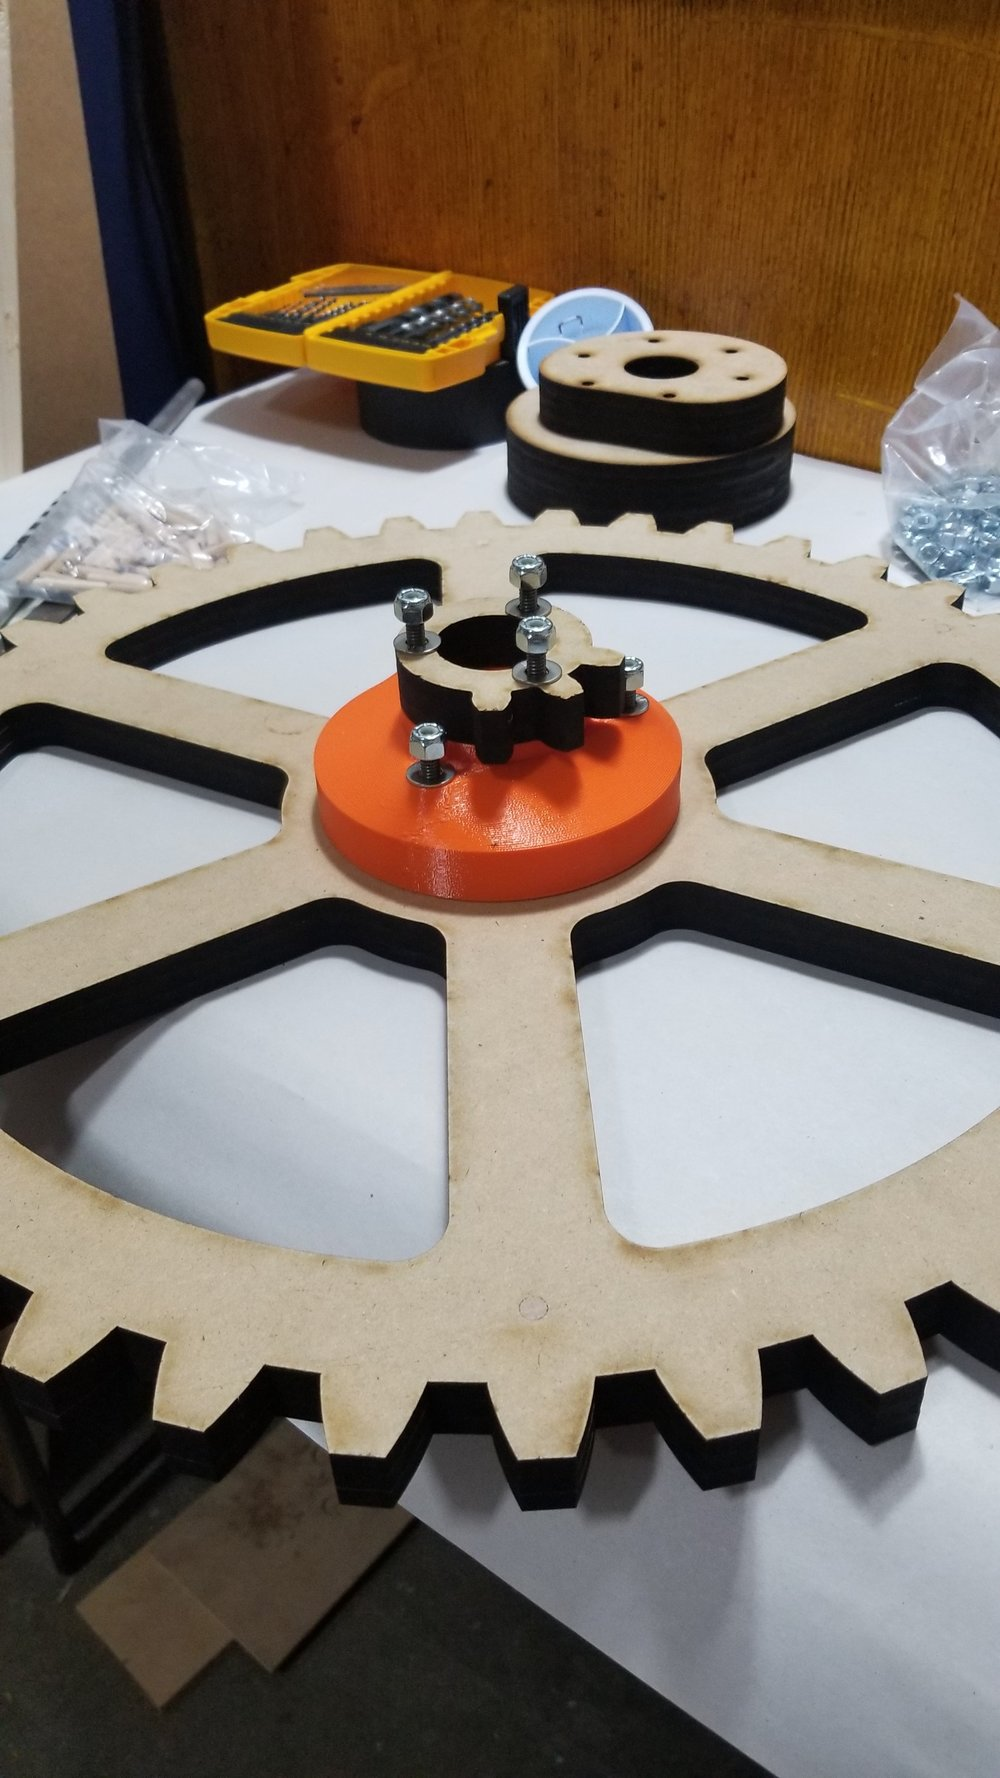 A 3D printed Spacer Assembly